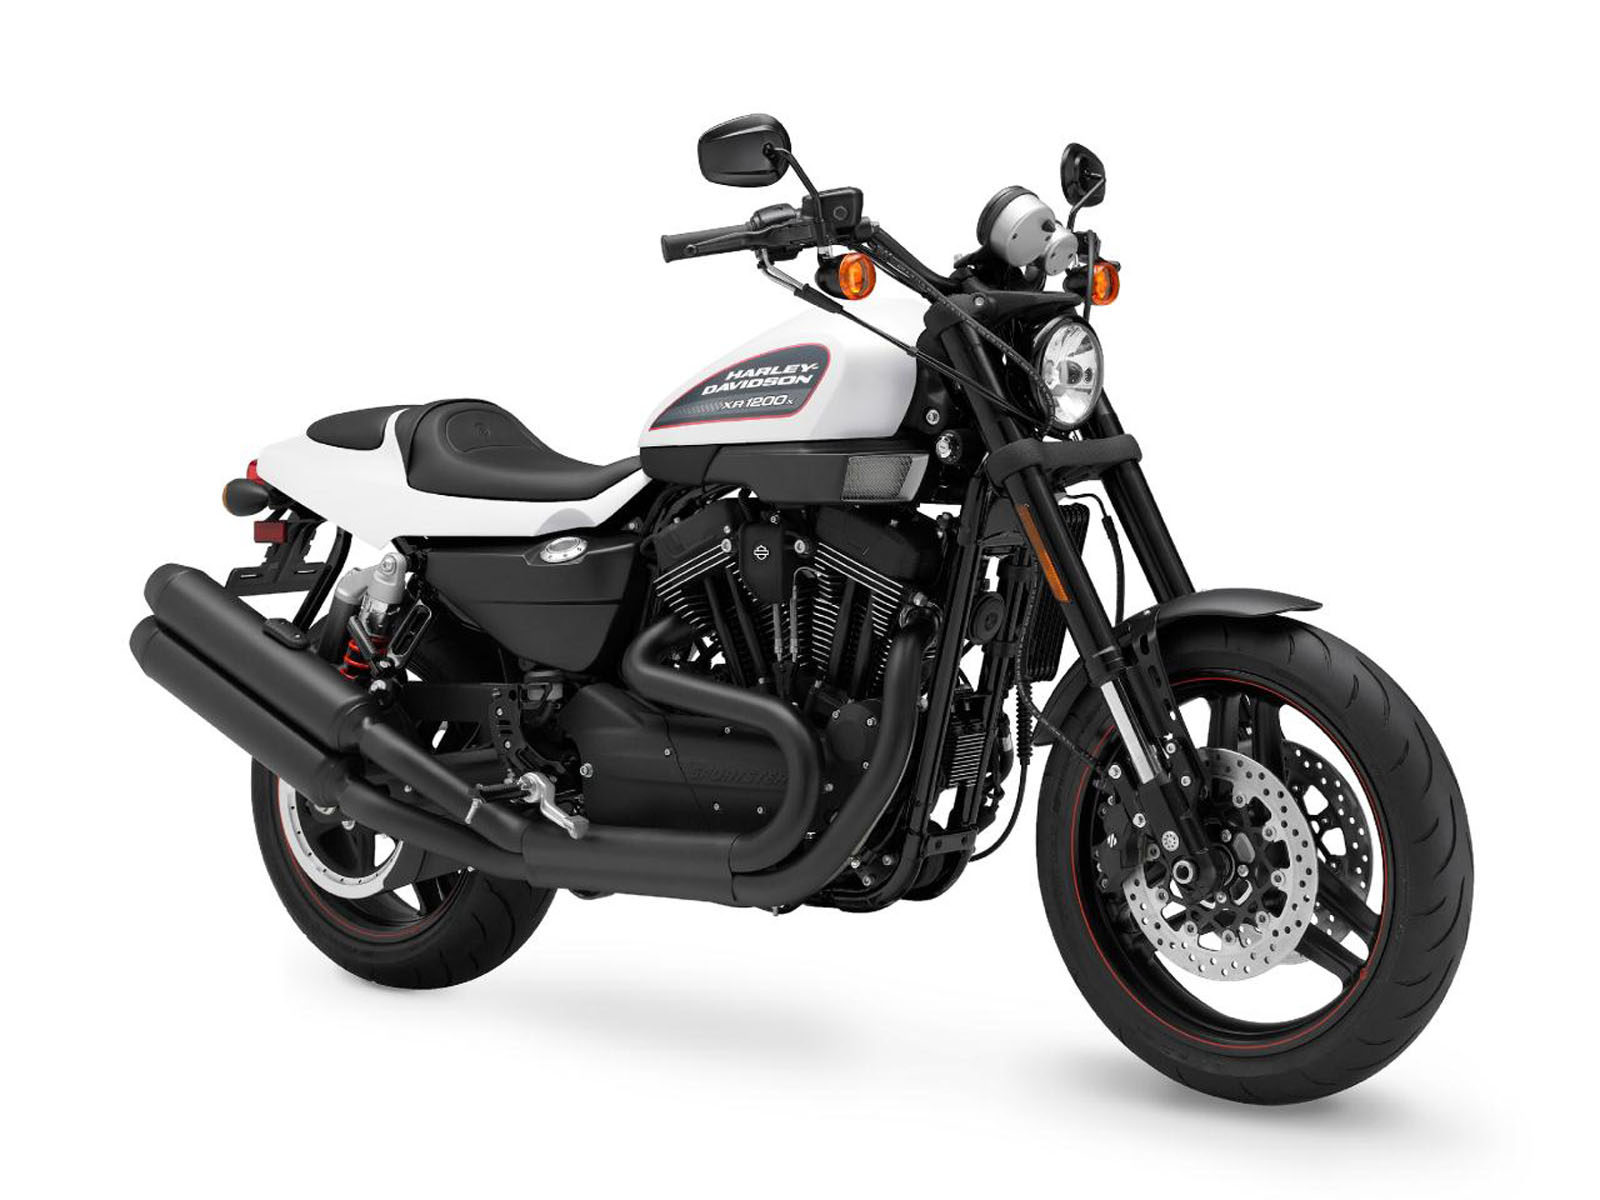 harley davidsons Come visit triple s harley-davidson® our dealership carries harley-davidson® motorcycles for sale, and offers parts, service & financing in morgantown, near fairmont, west virginia, and uniontown, pennsylvania.